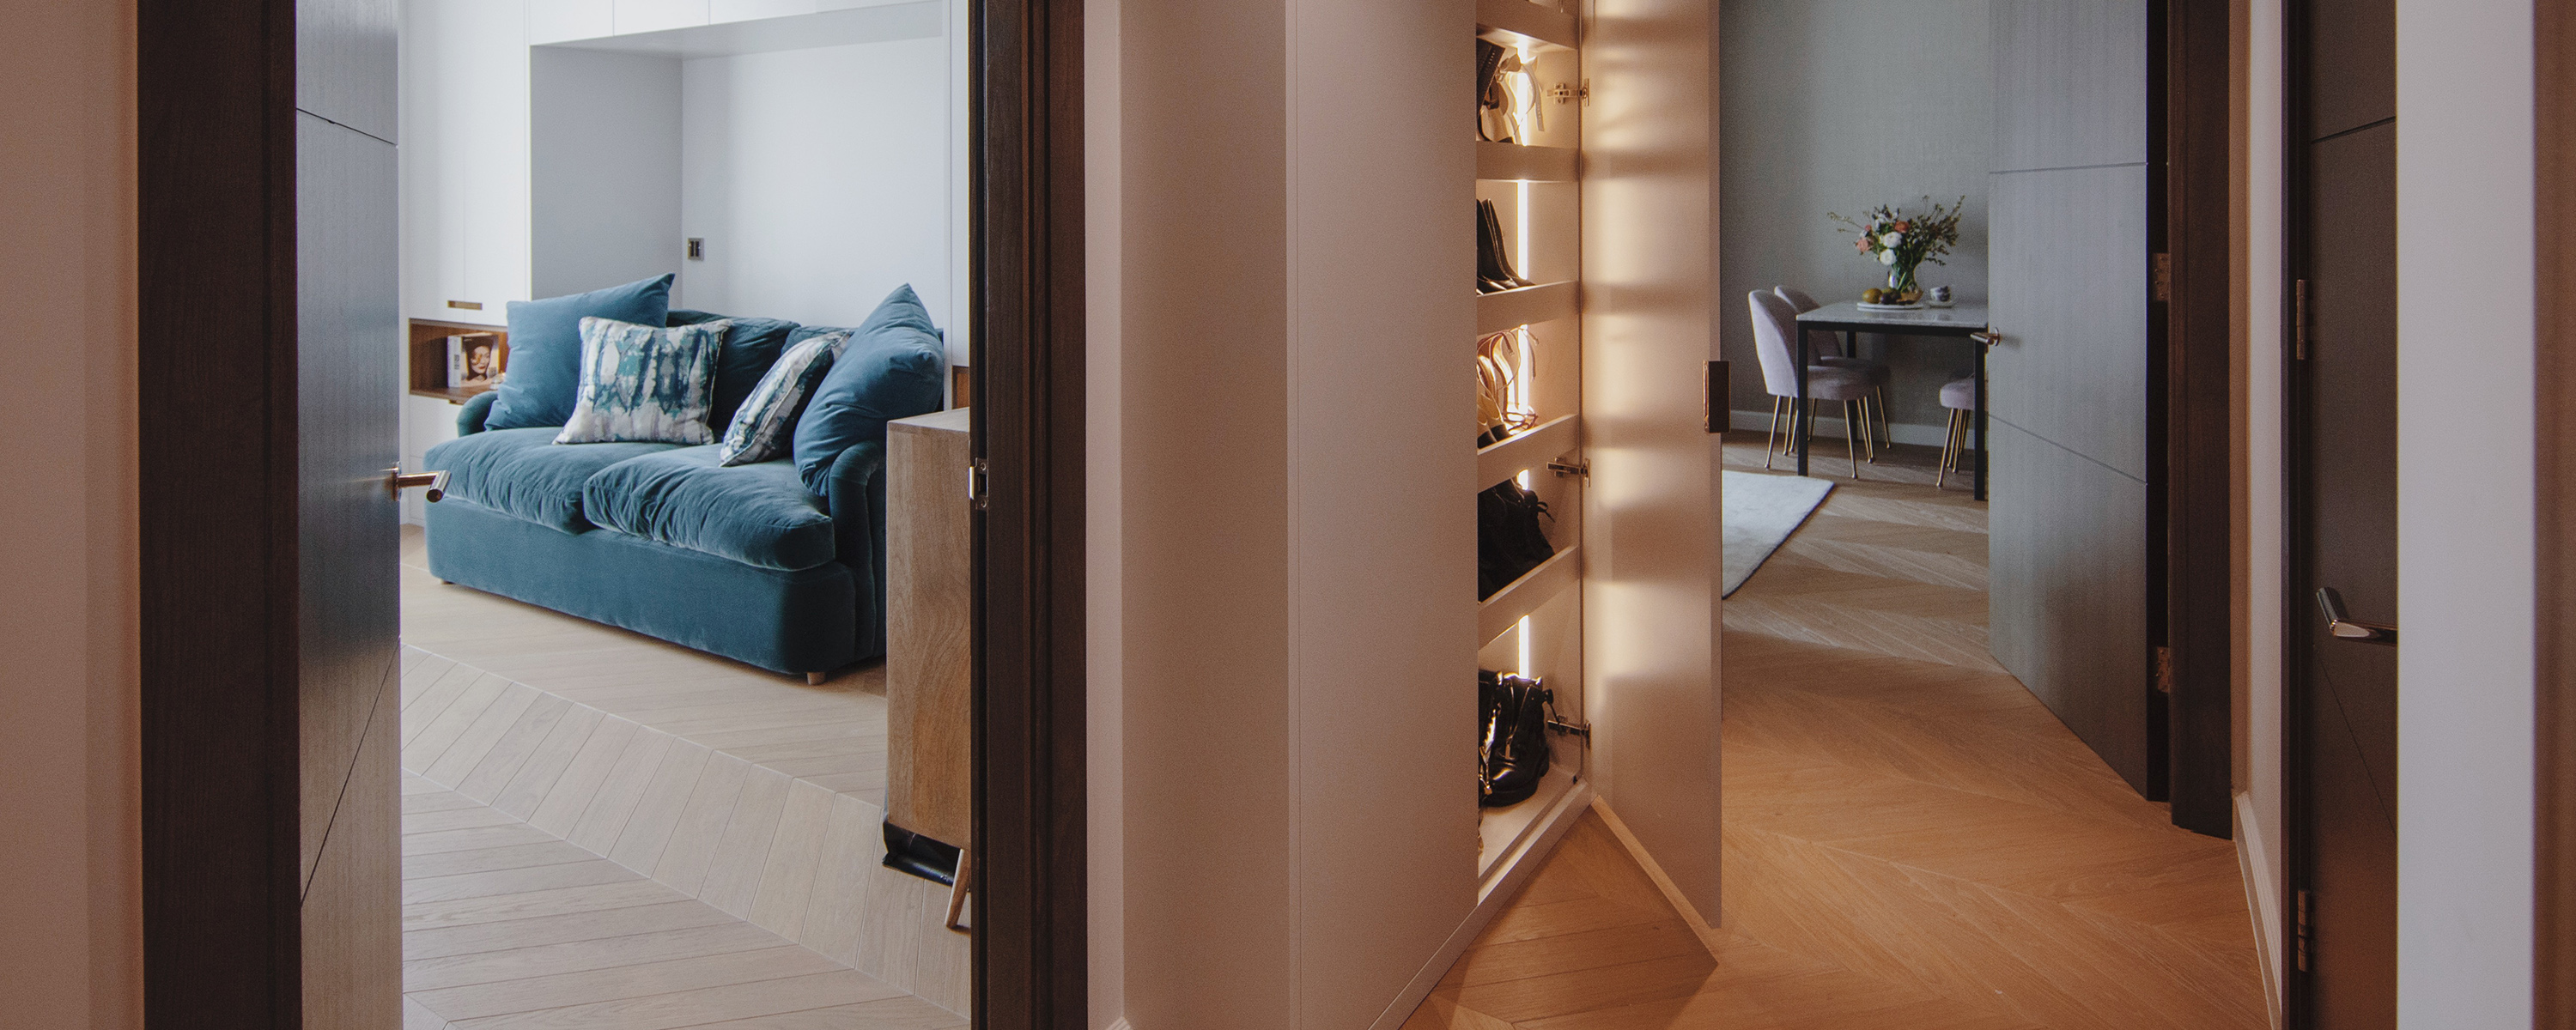 WELLINGTON HOUSE-THE BESPOKE JOINERY FOR A TIDY AND ORGANISED HOME